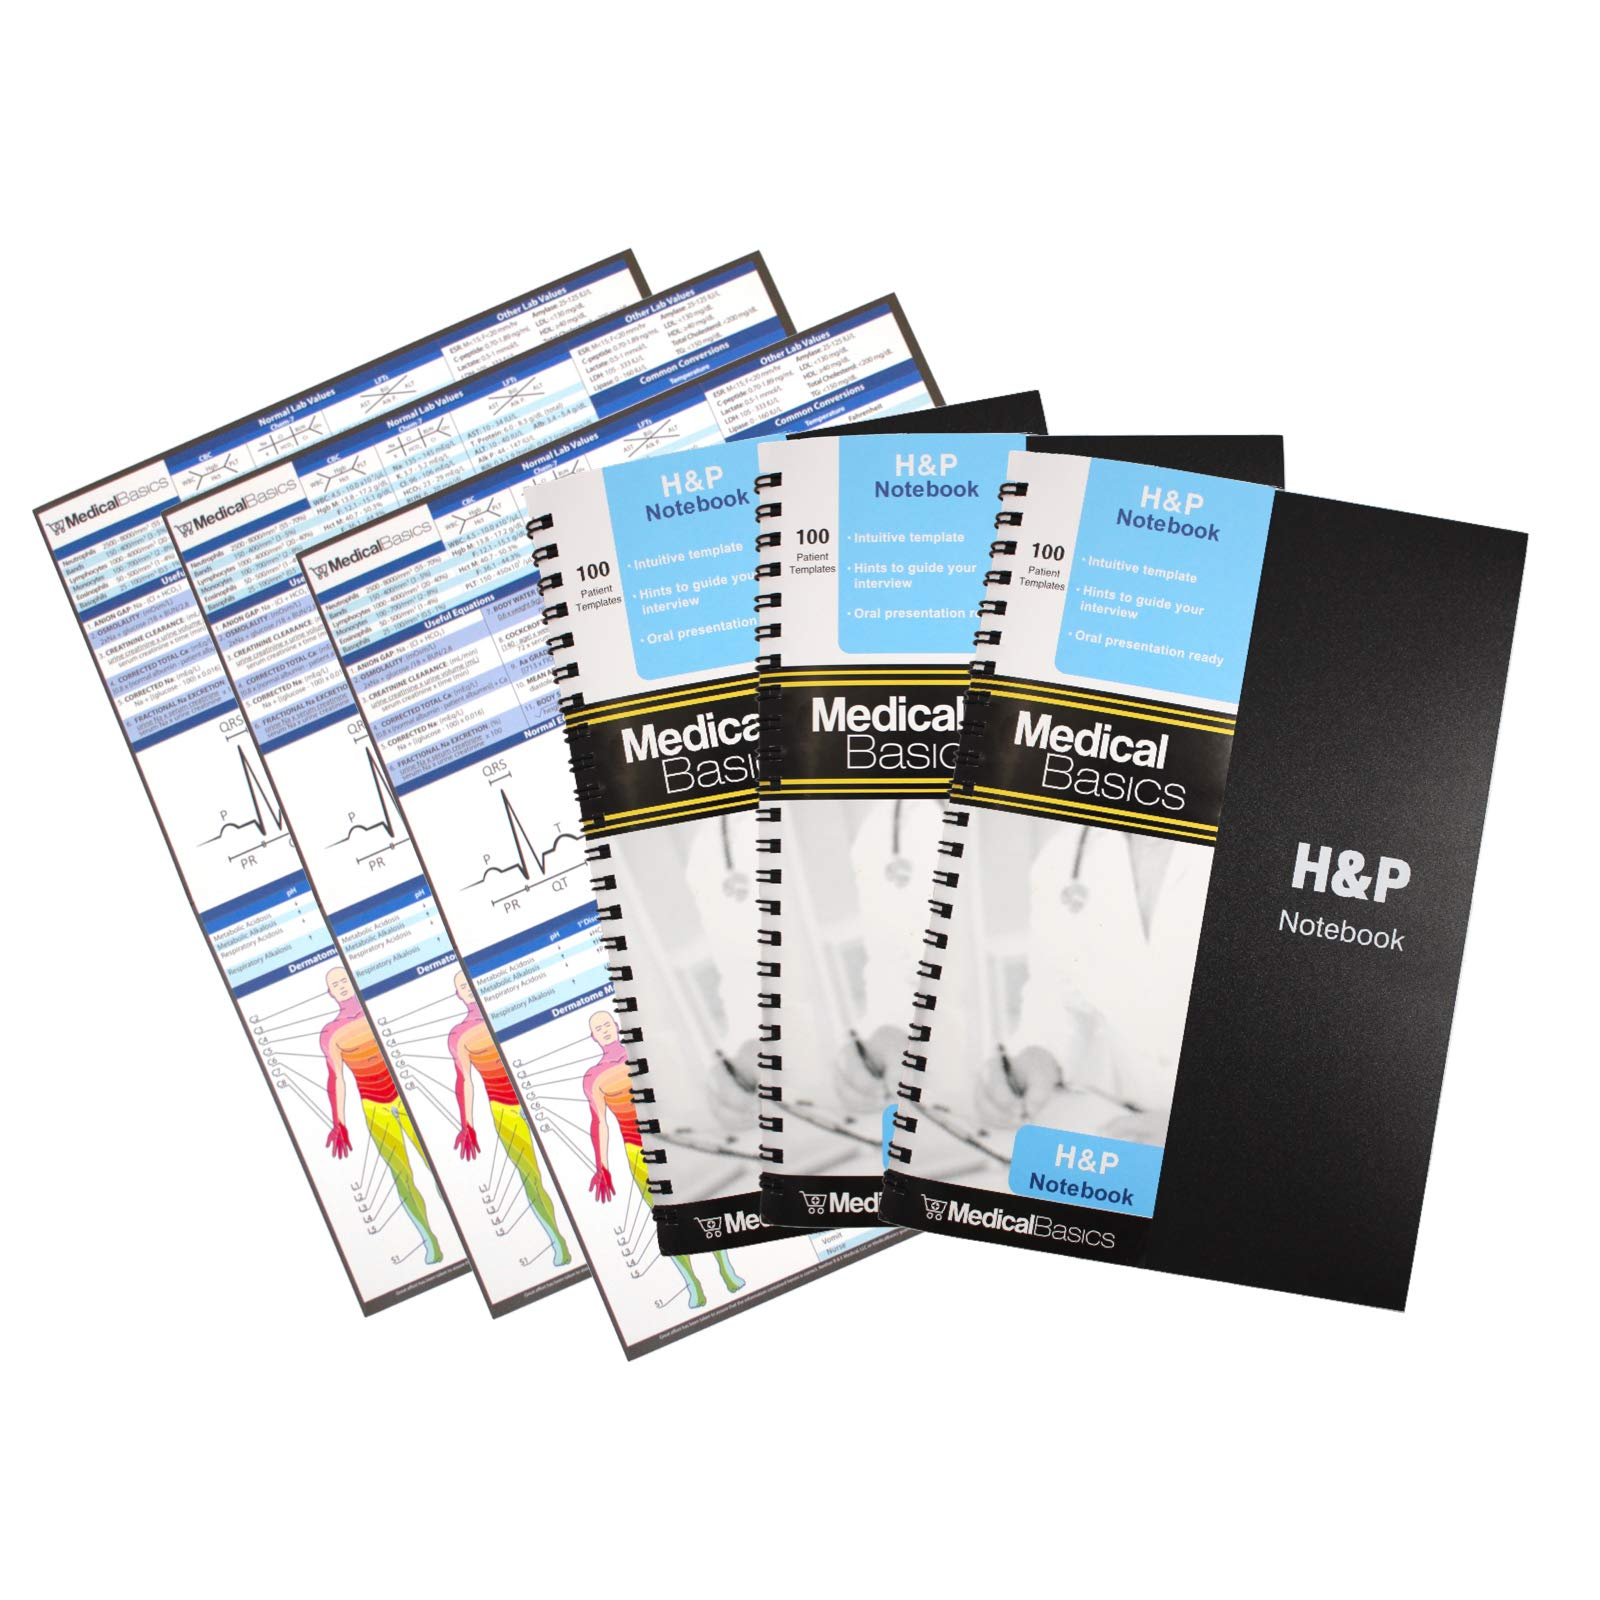 H&P notebook (3 pack) - Medical History and Physical notebook, 100 medical templates with perforations